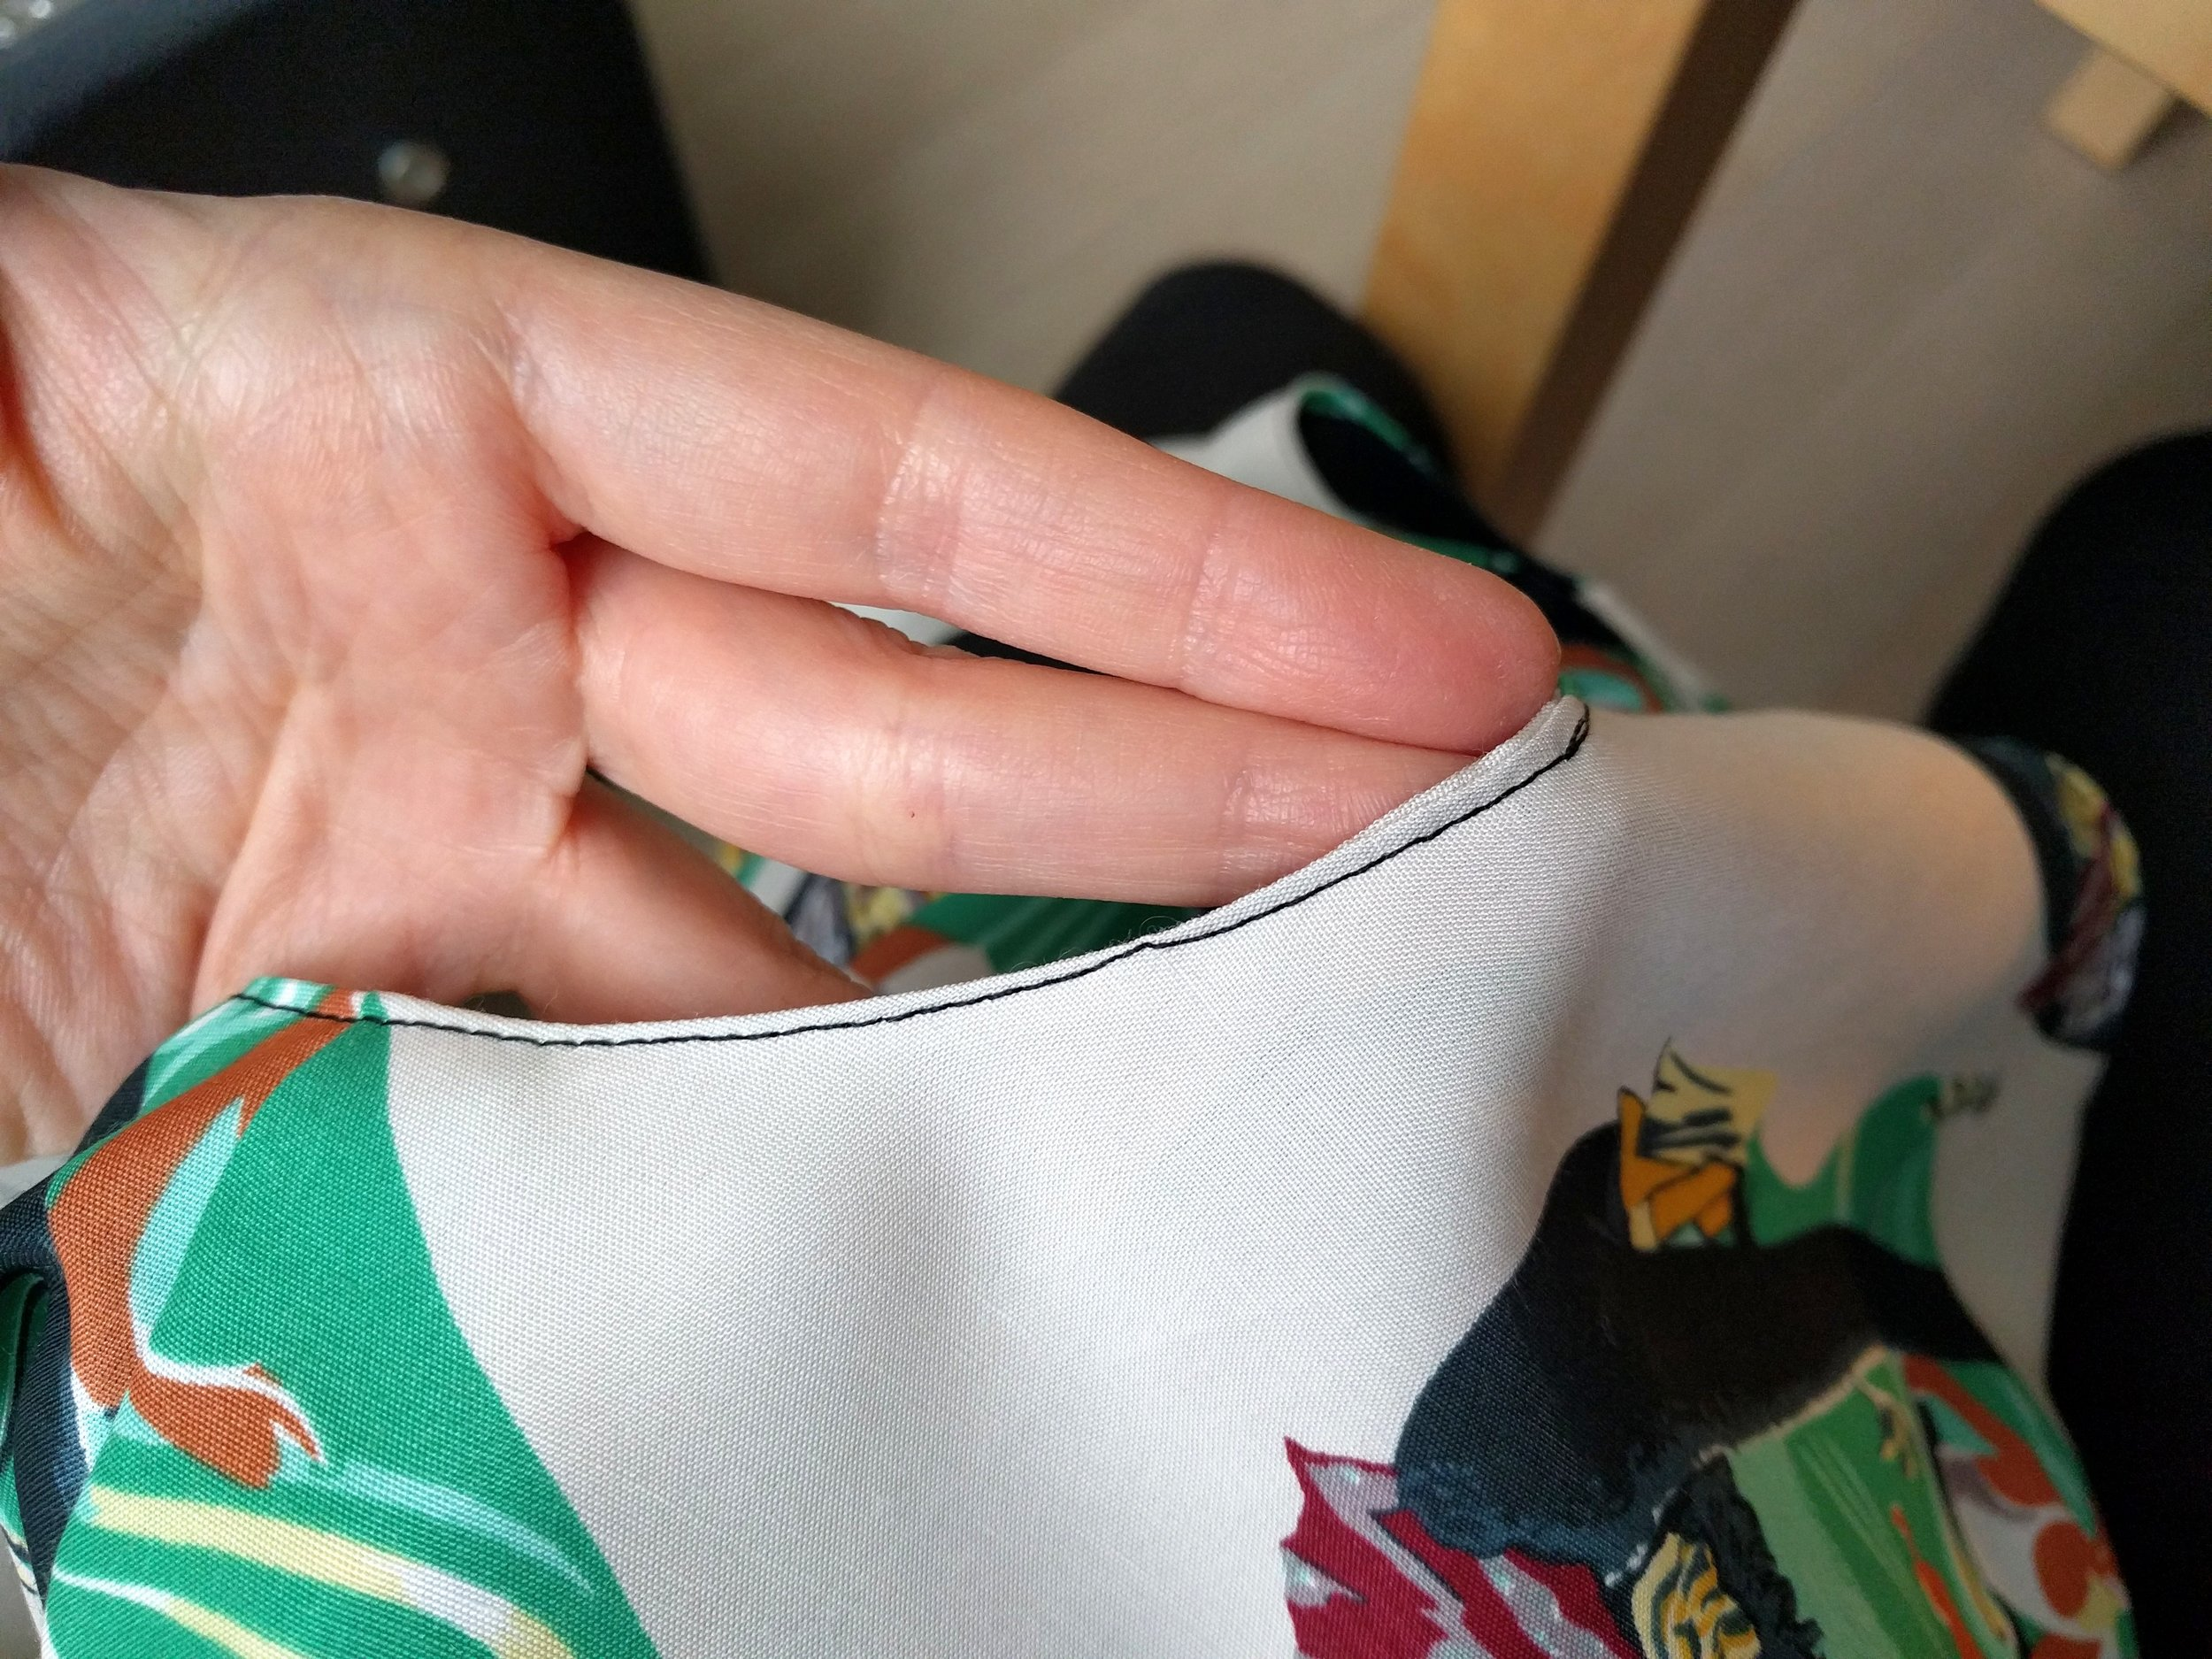 This finishing seam kinda sucks. But you know who cares? Not this gal.